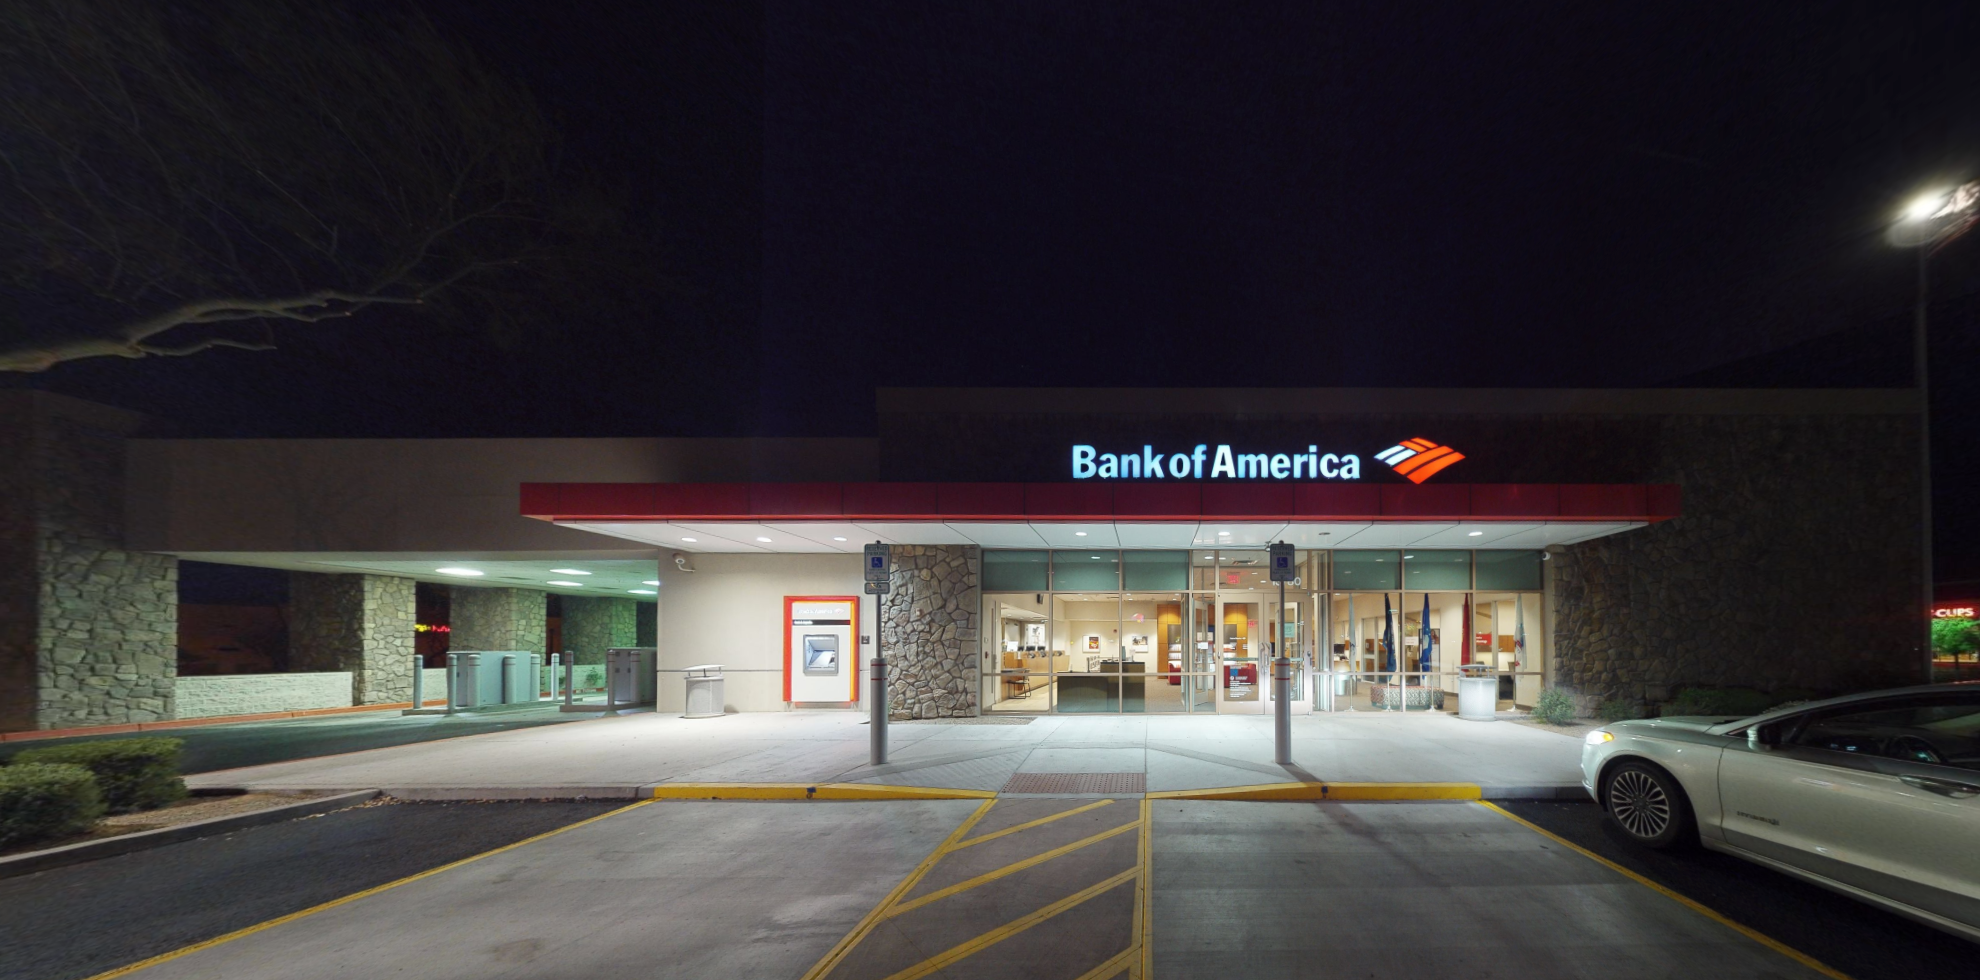 Bank of America financial center with drive-thru ATM | 13780 W Waddell Rd, Surprise, AZ 85379